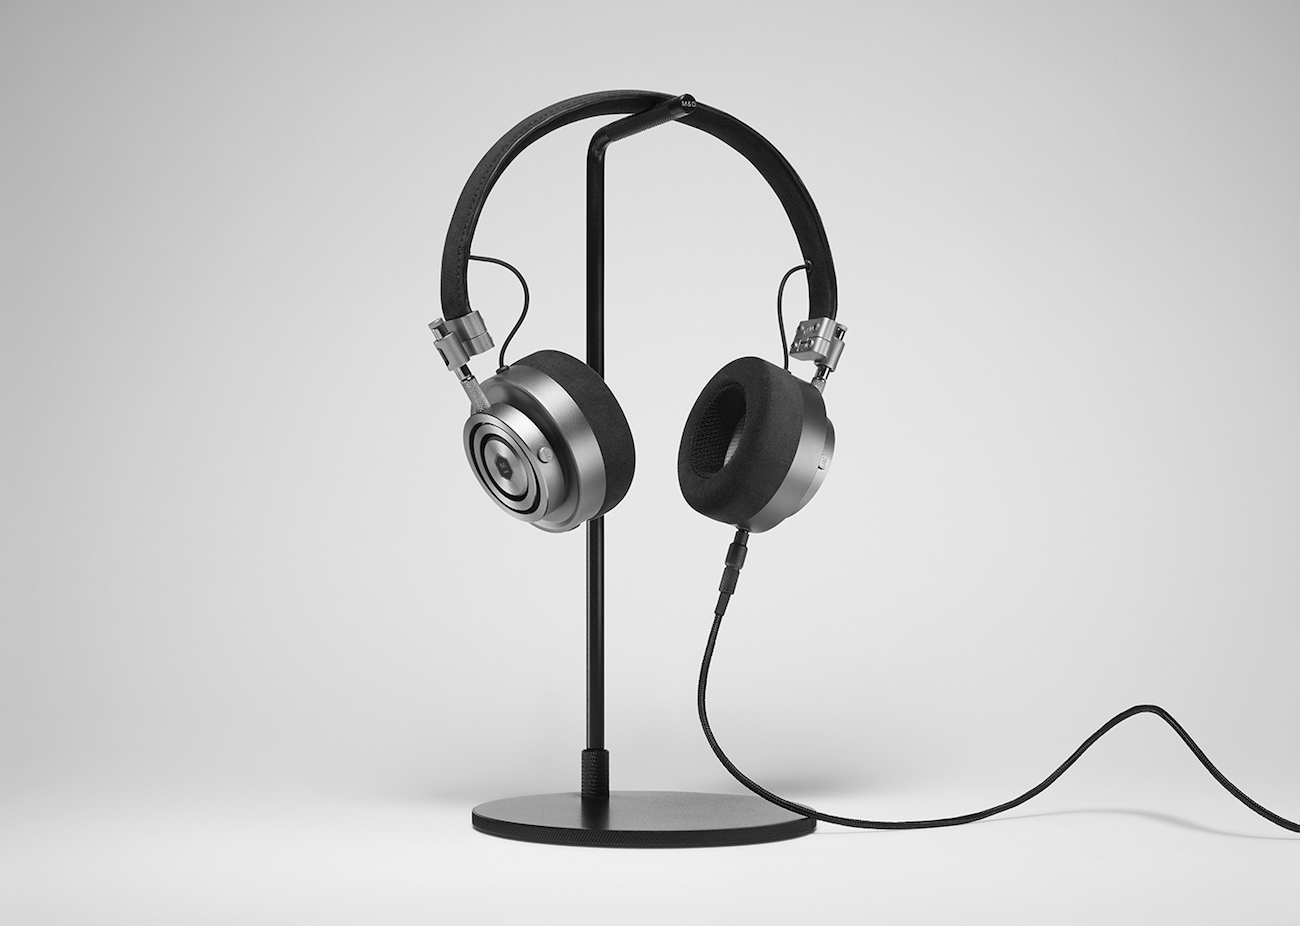 Master & Dynamic MH40 Over-Ear Headphones